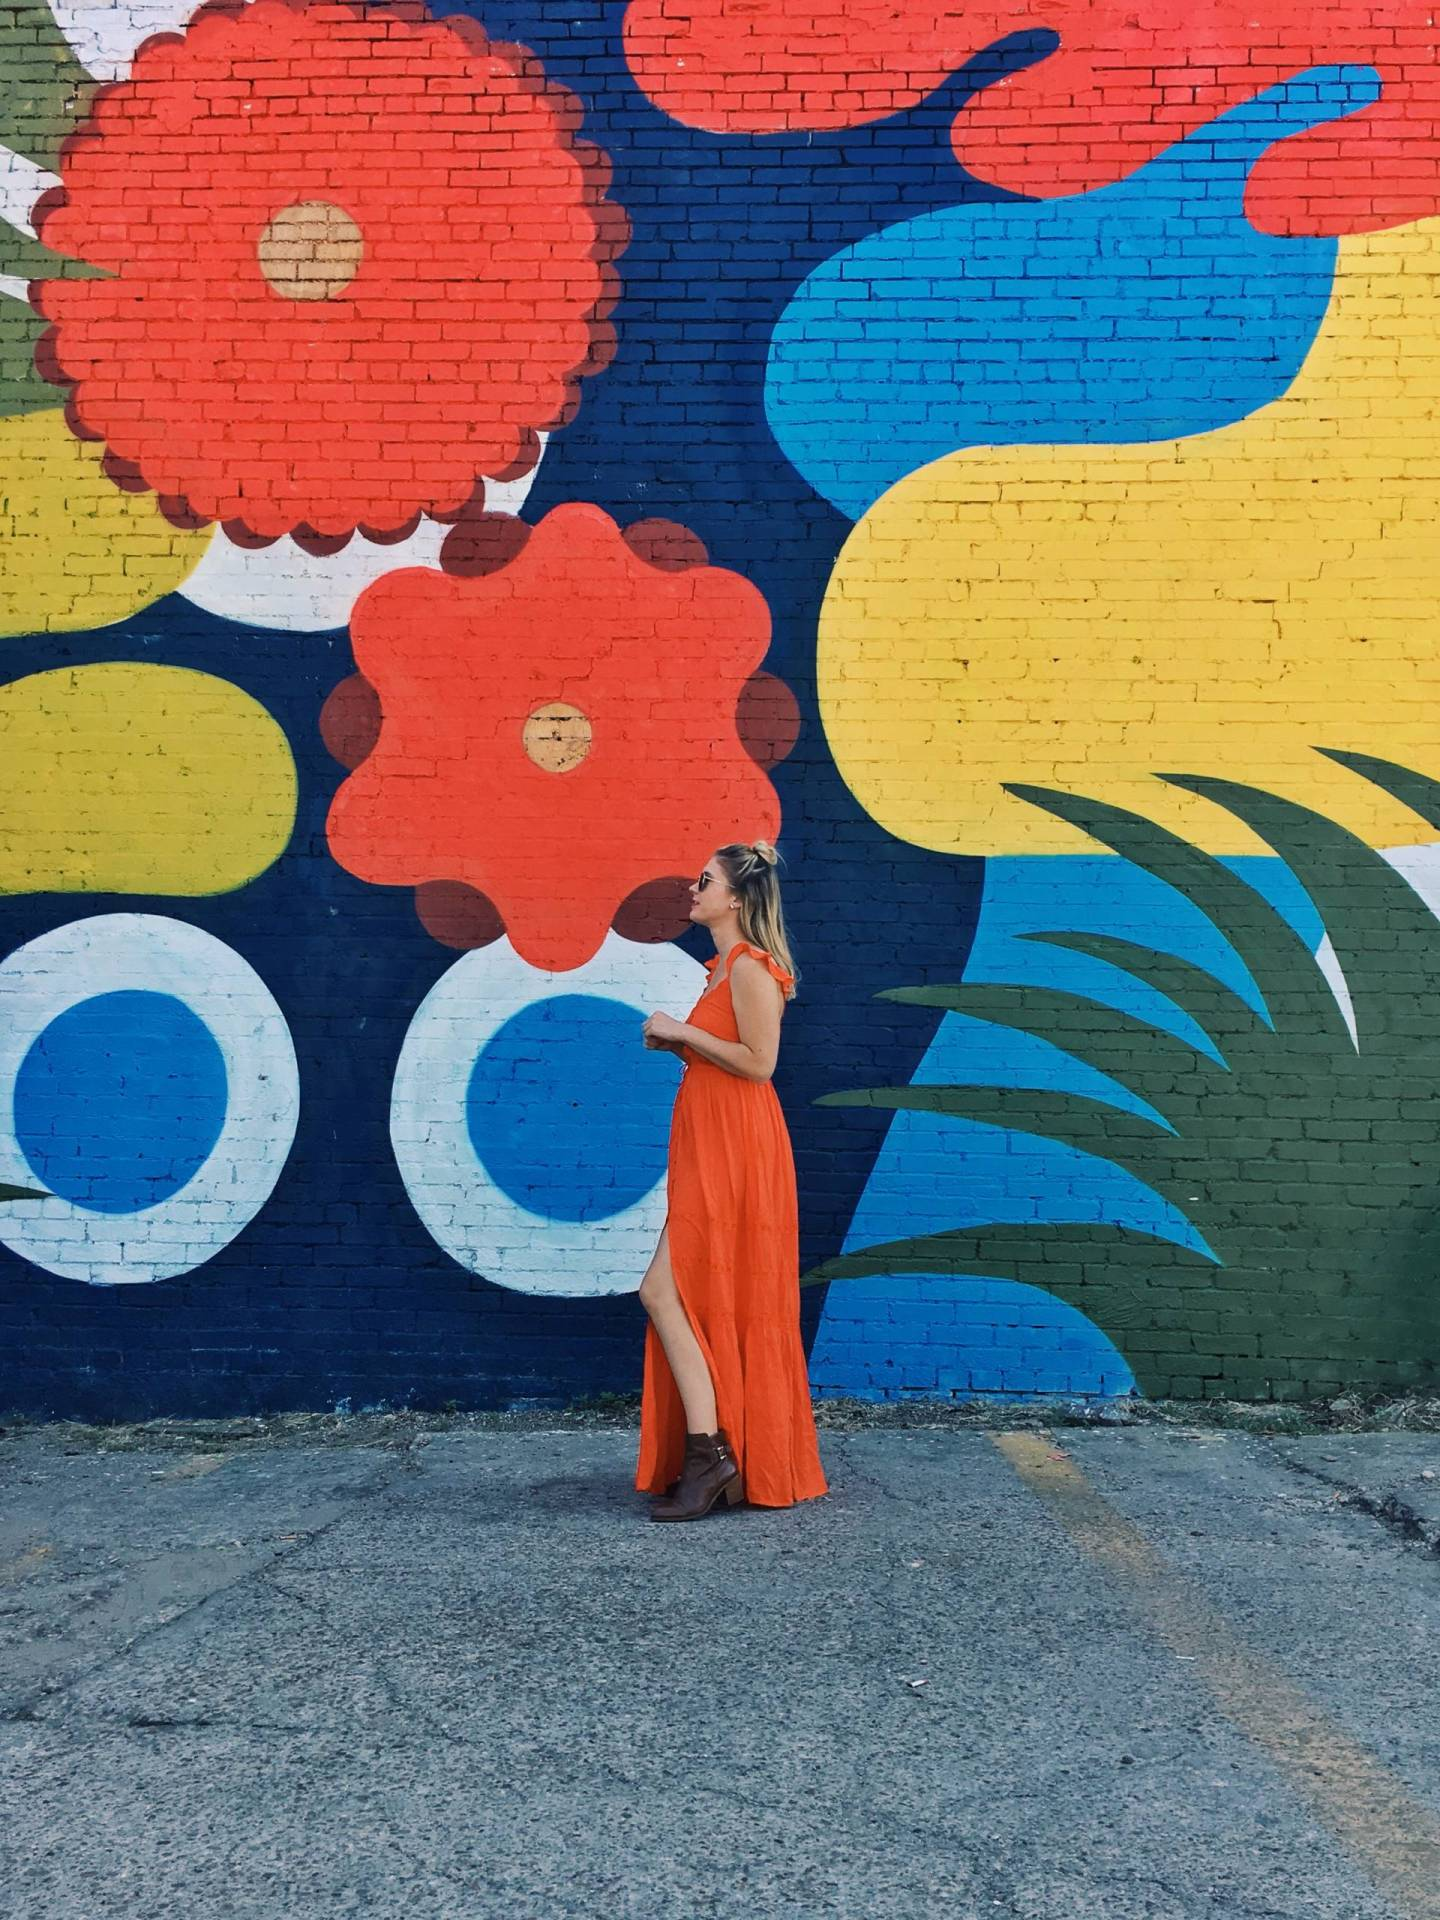 The 10 Best Mural Walls in Dallas (and their EXACT locations!)